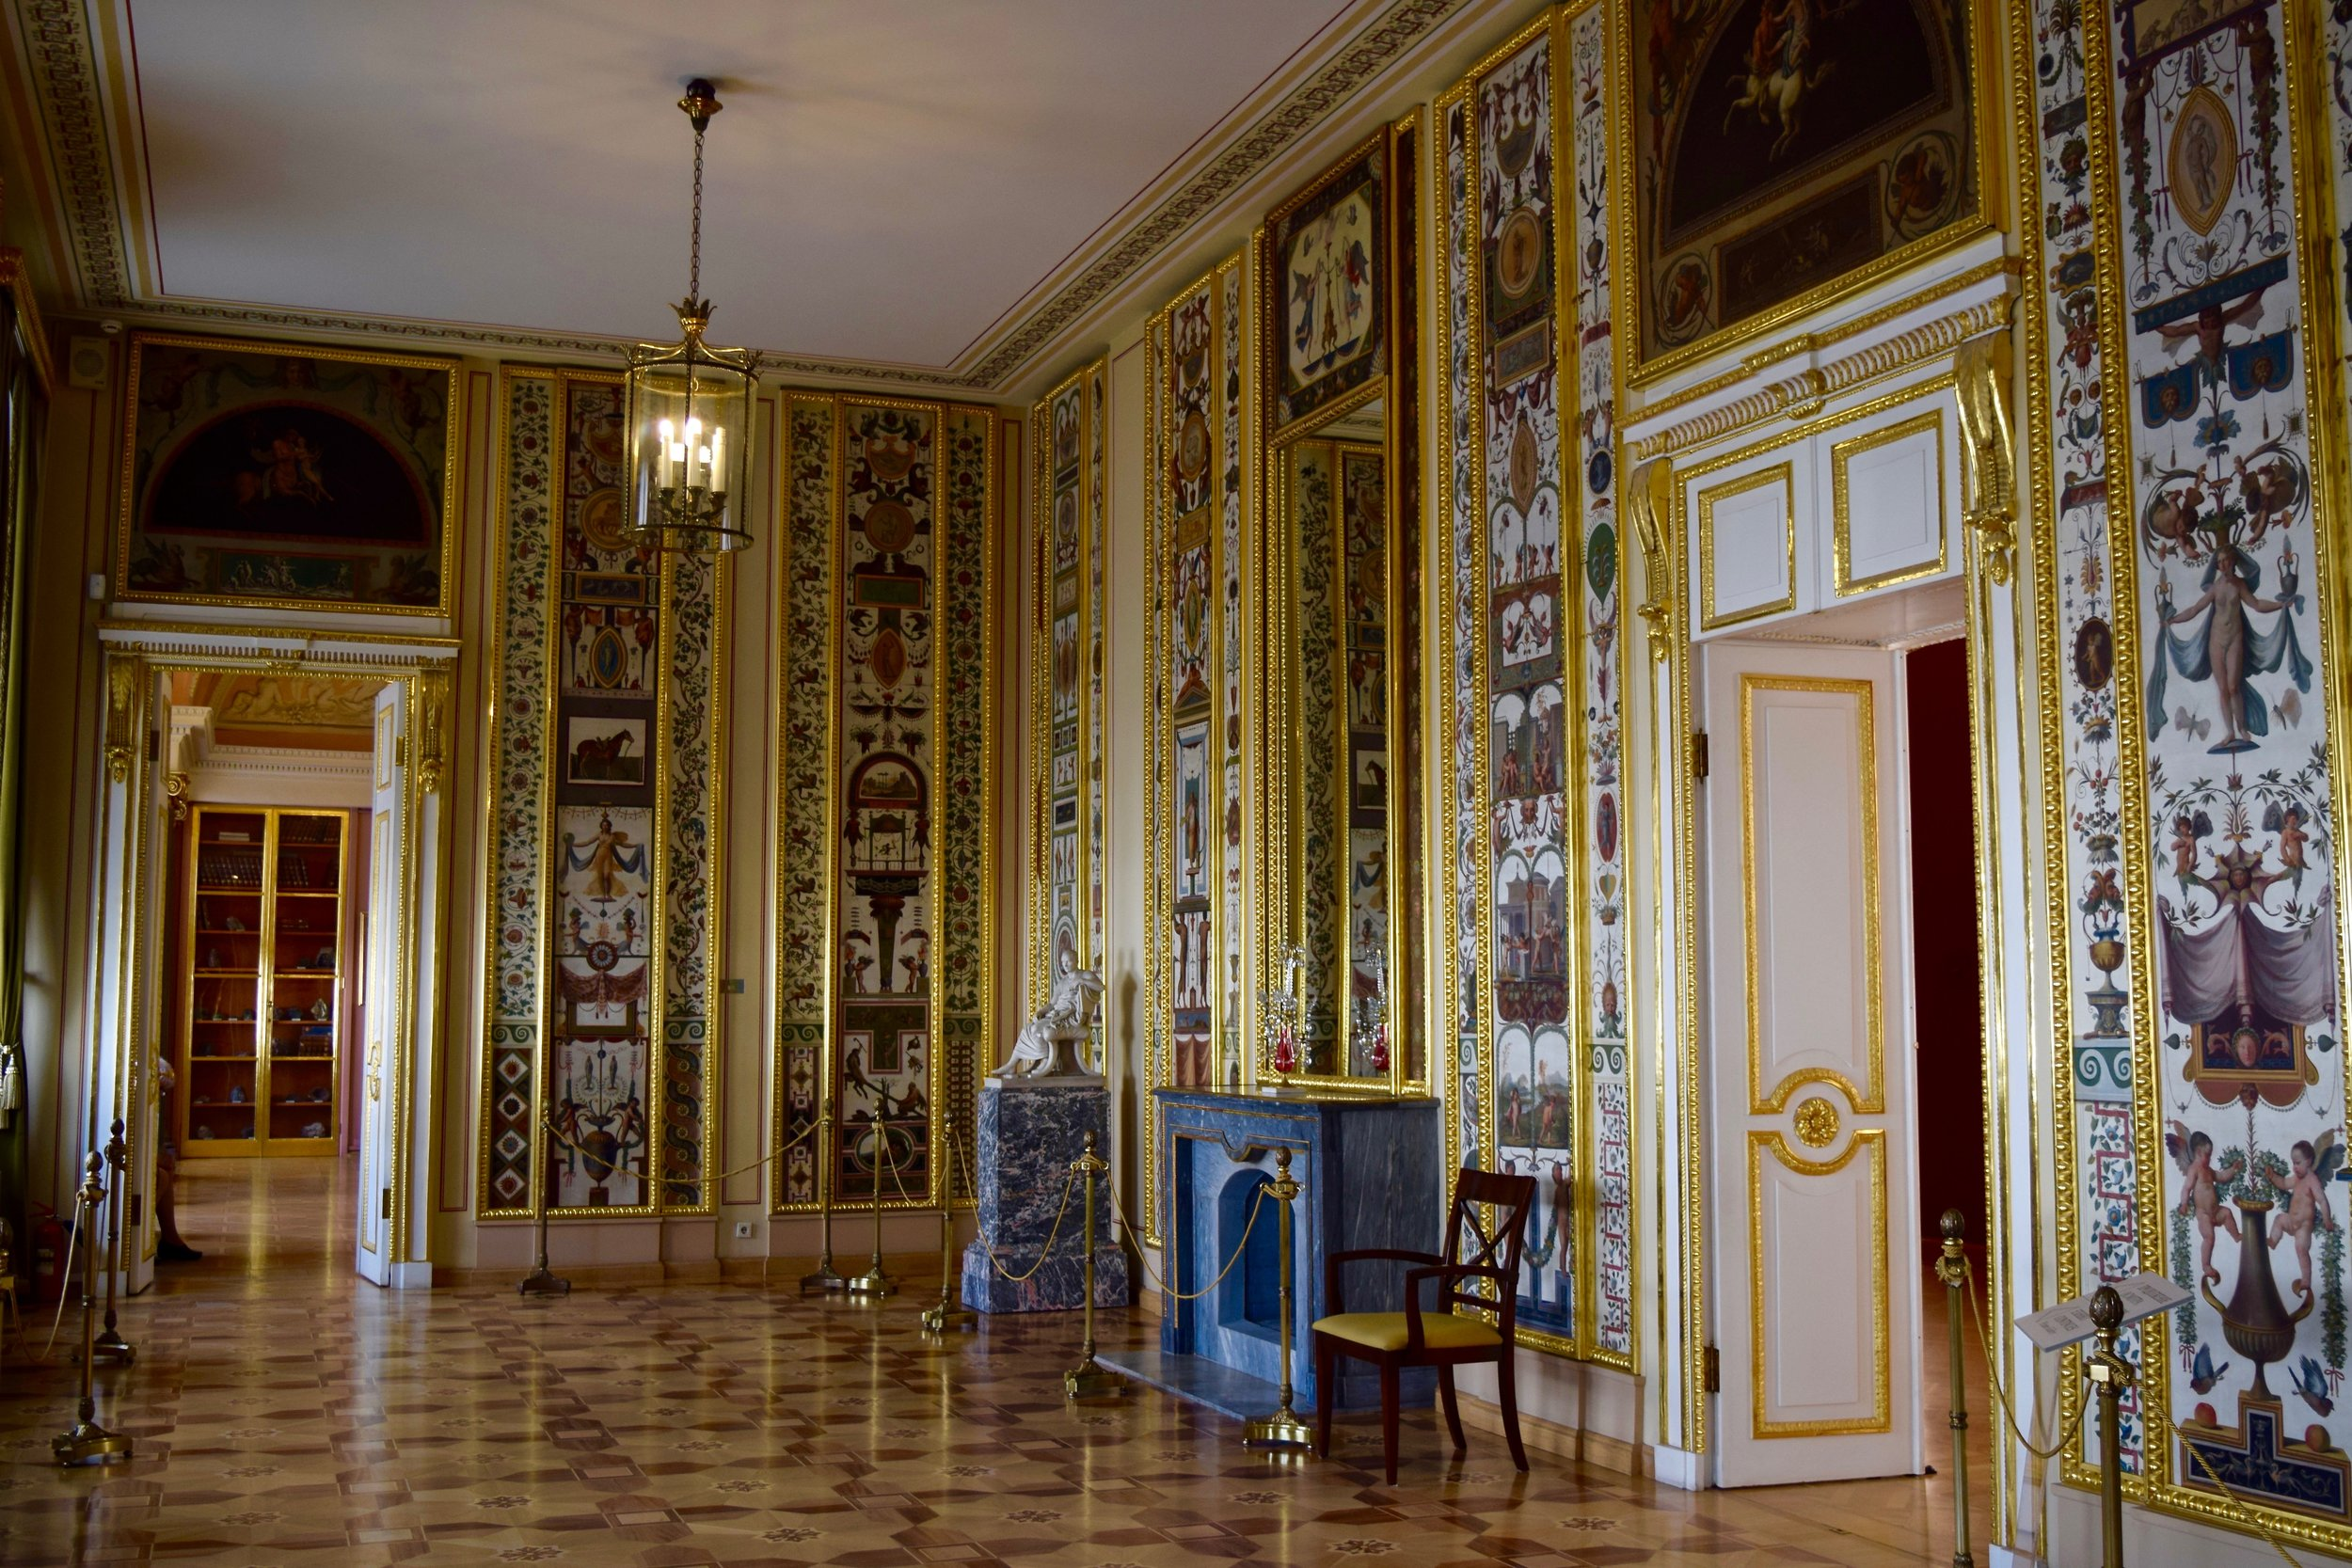 Interior of the Stroganov Palace